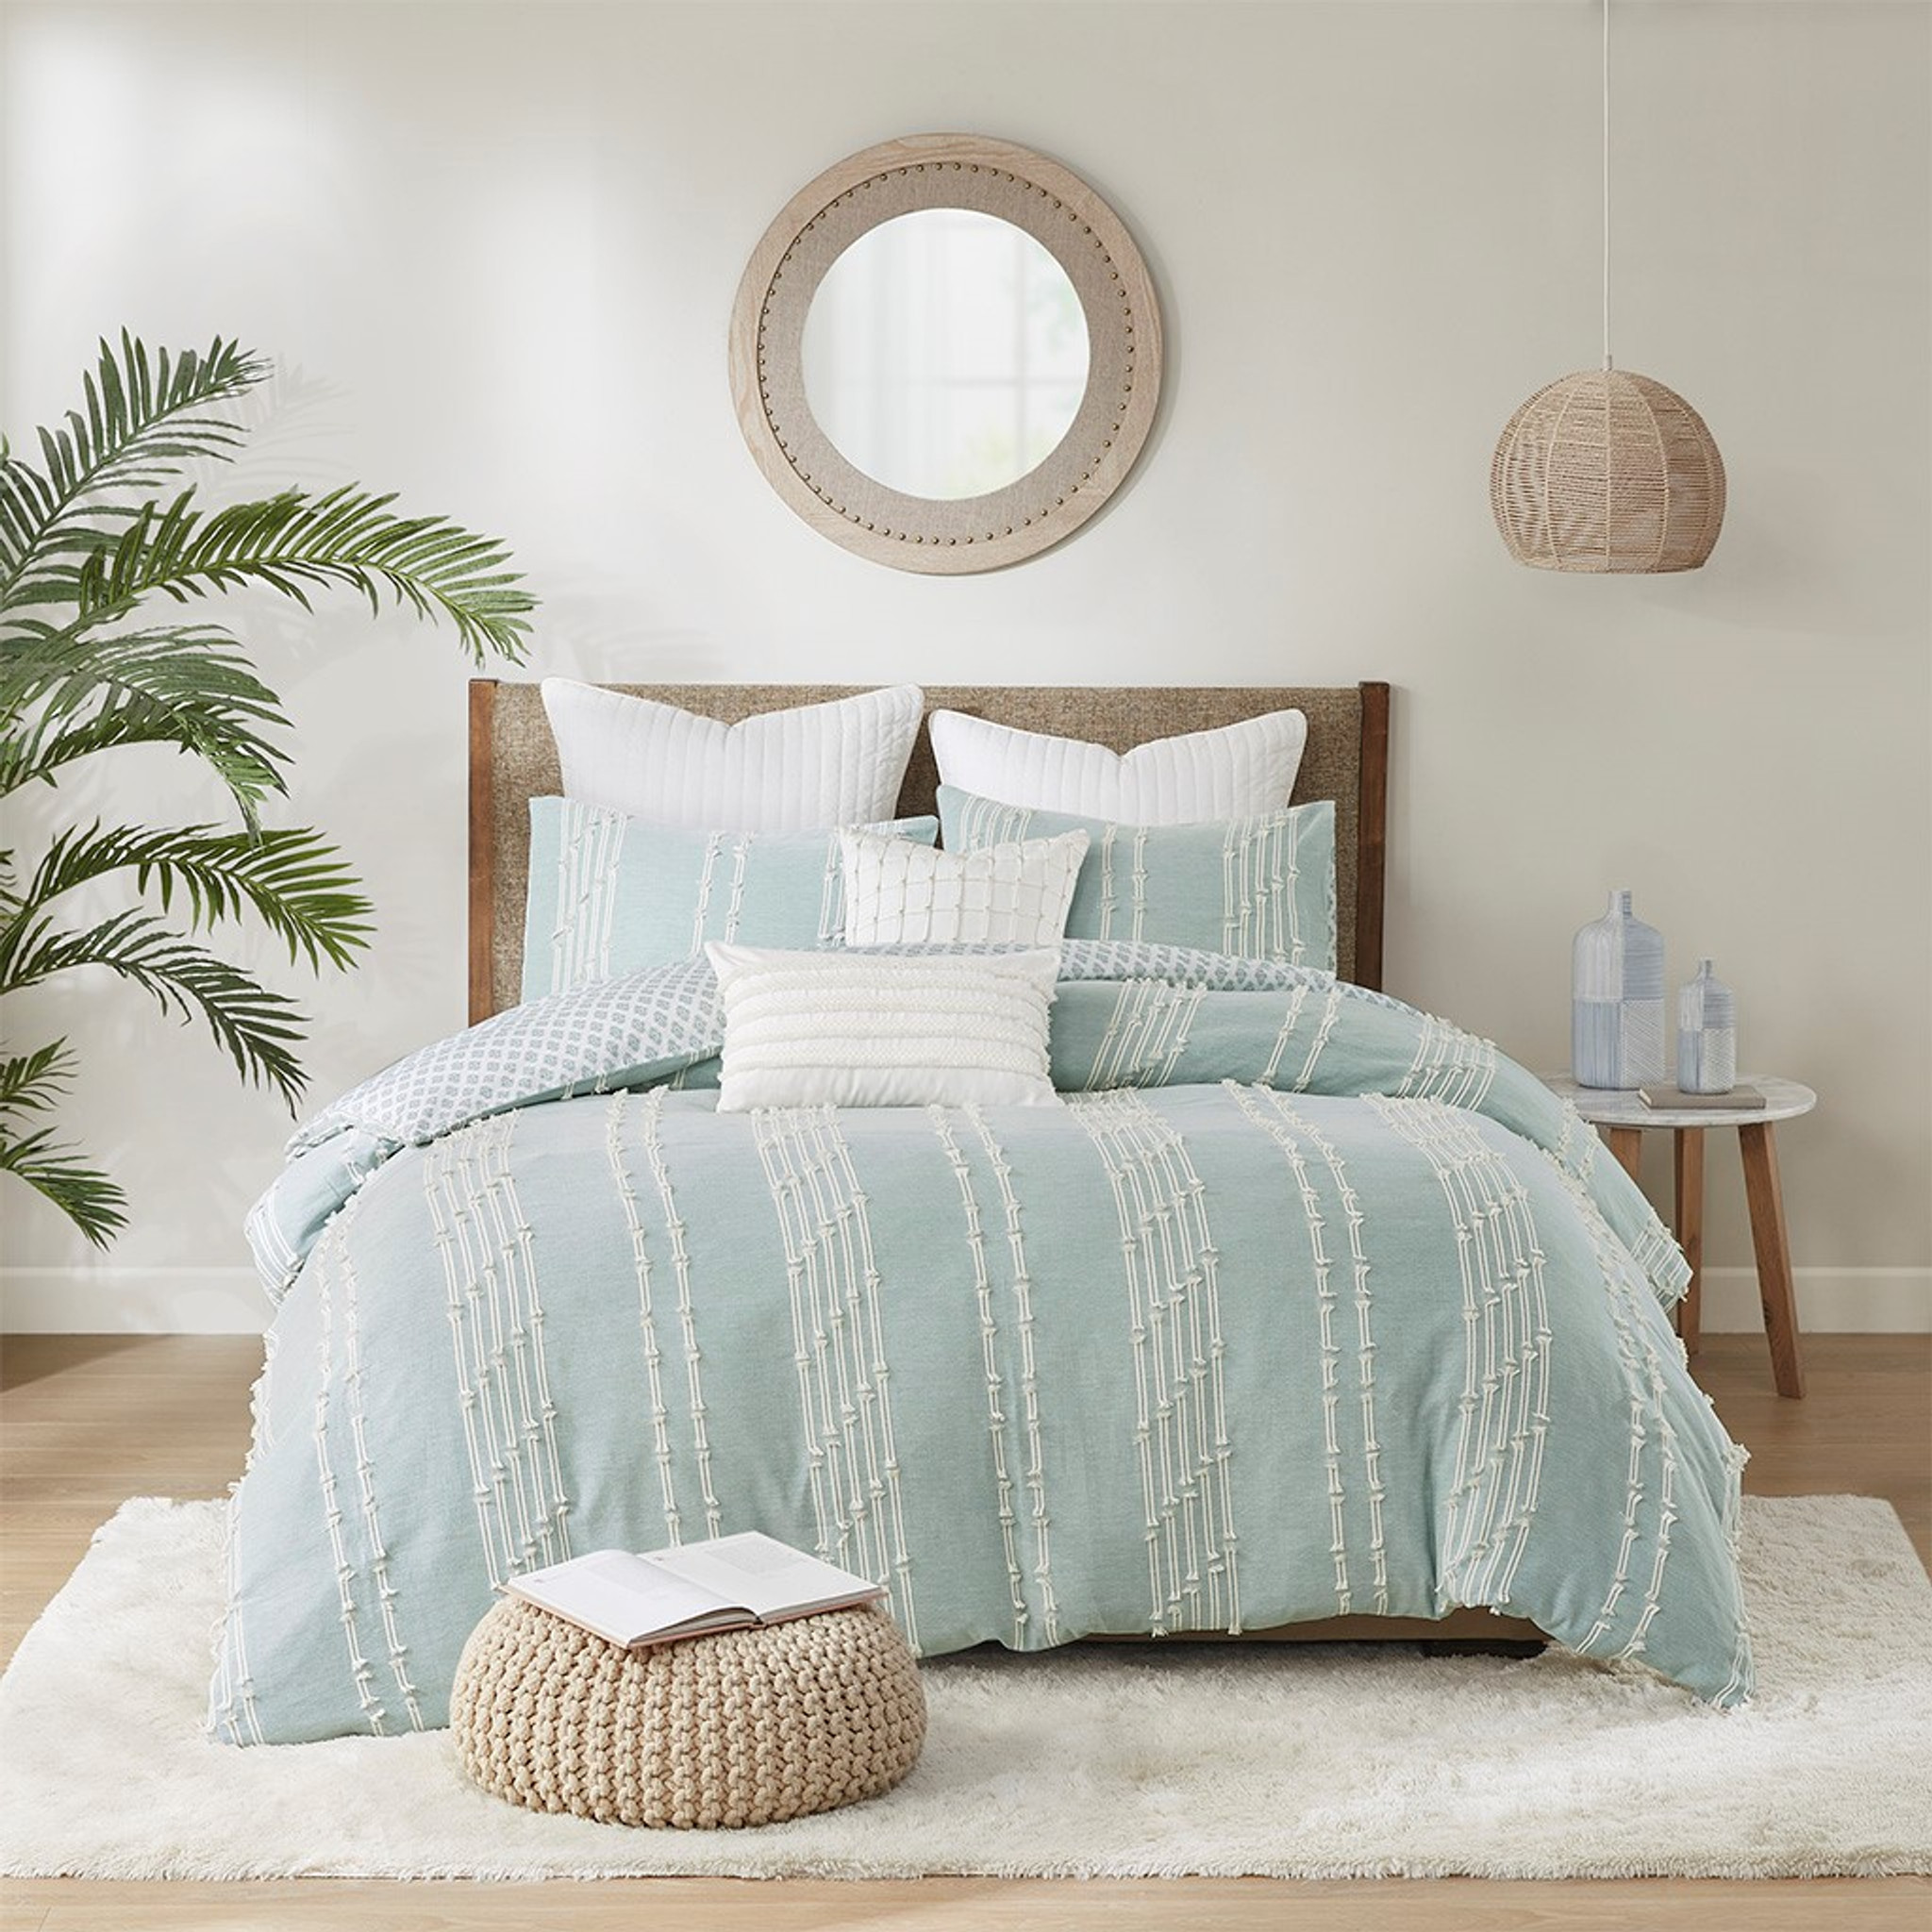 Kai Embellished Aqua King Comforter Set Caron S Beach House